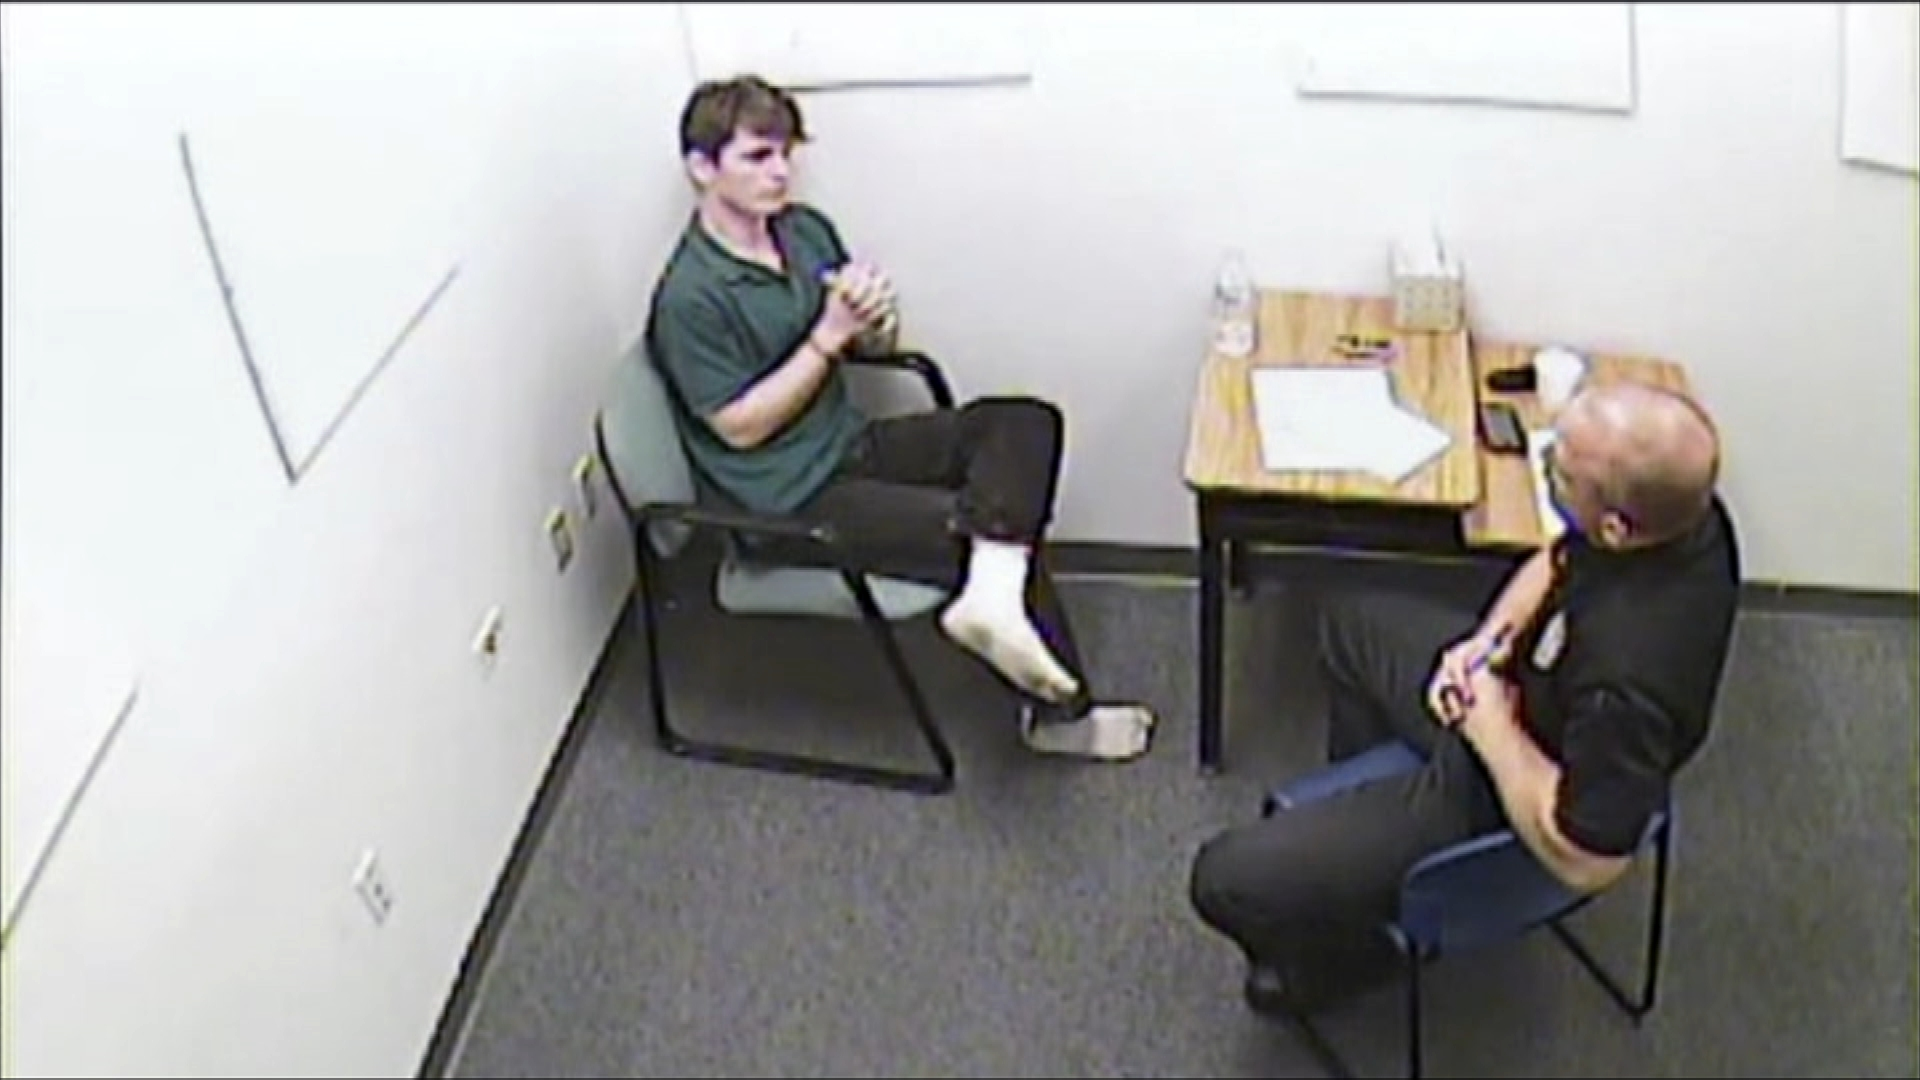 A still from Devon Arthurs' interview with the Tampa police.